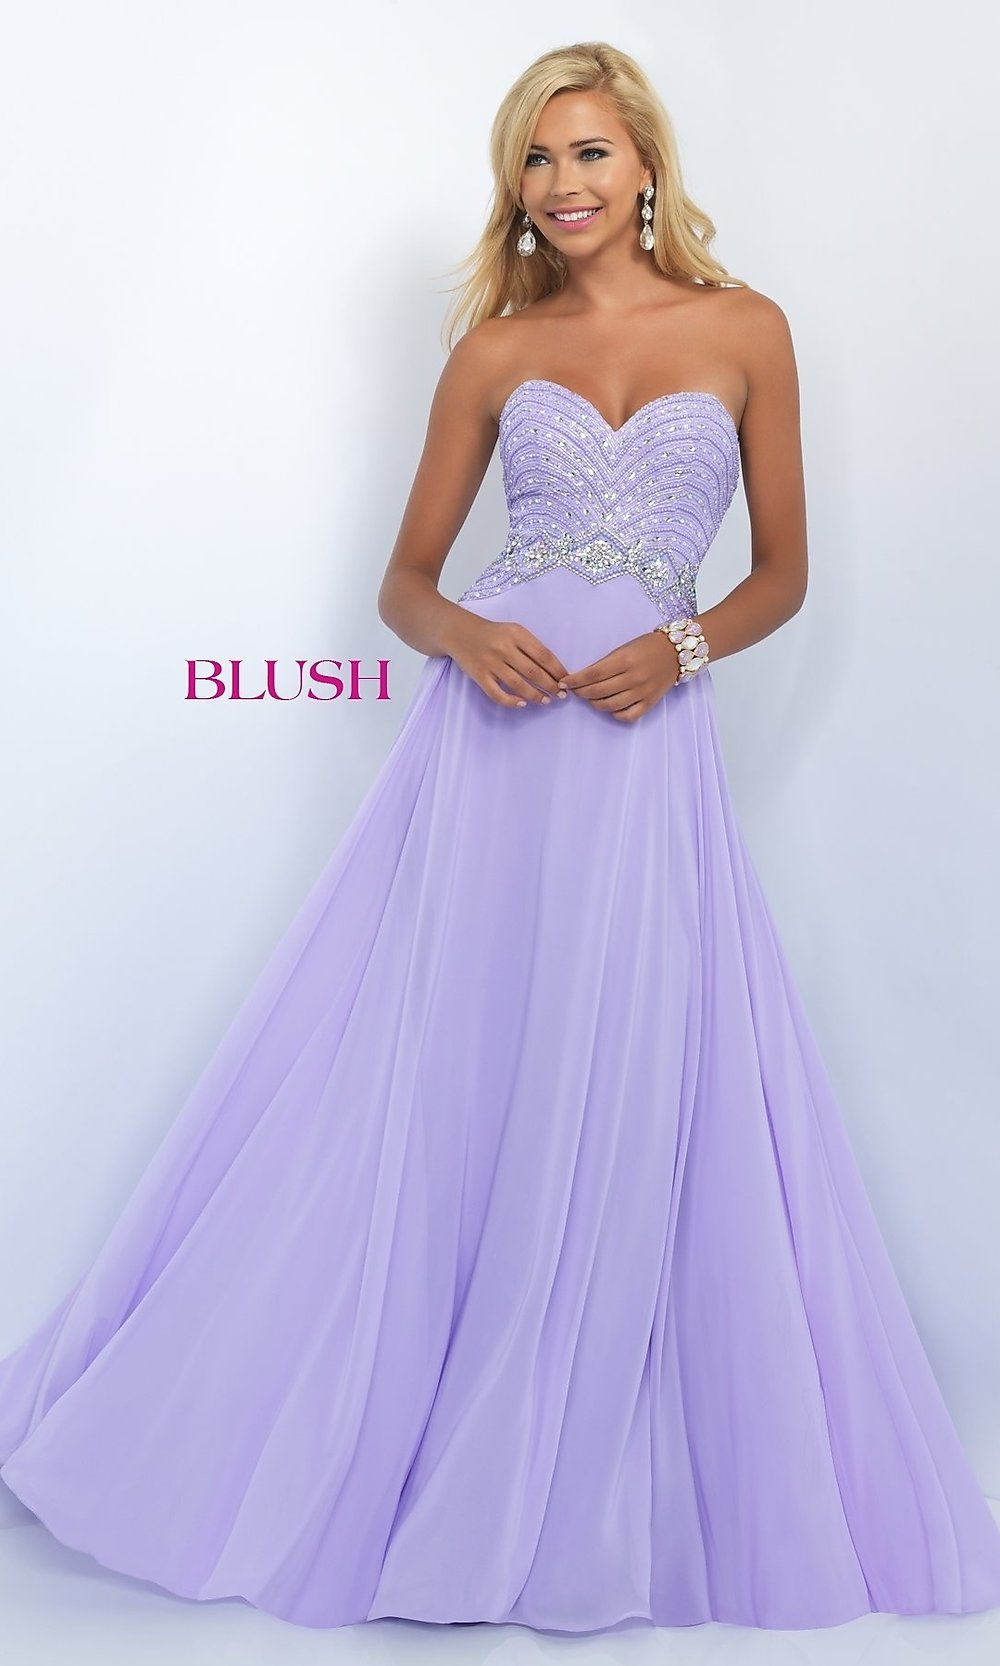 Long Beaded Strapless Sweetheart Prom Dress - PromGirl